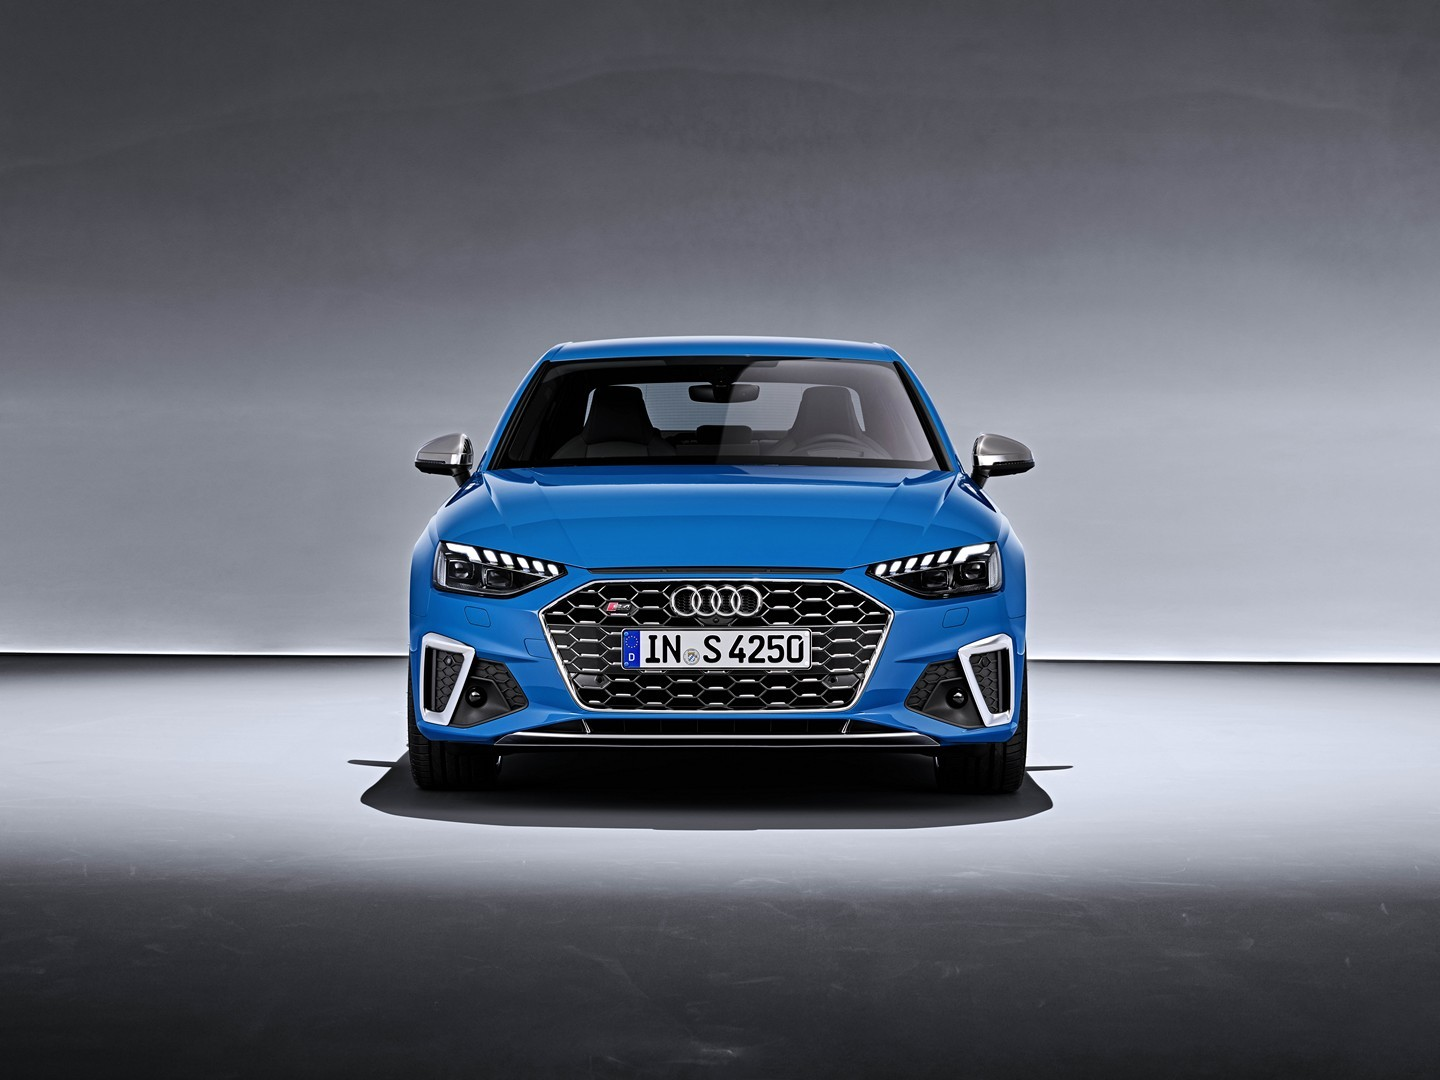 2020 Audi S4 And S4 Avant Debut With New Look Tdi Engines